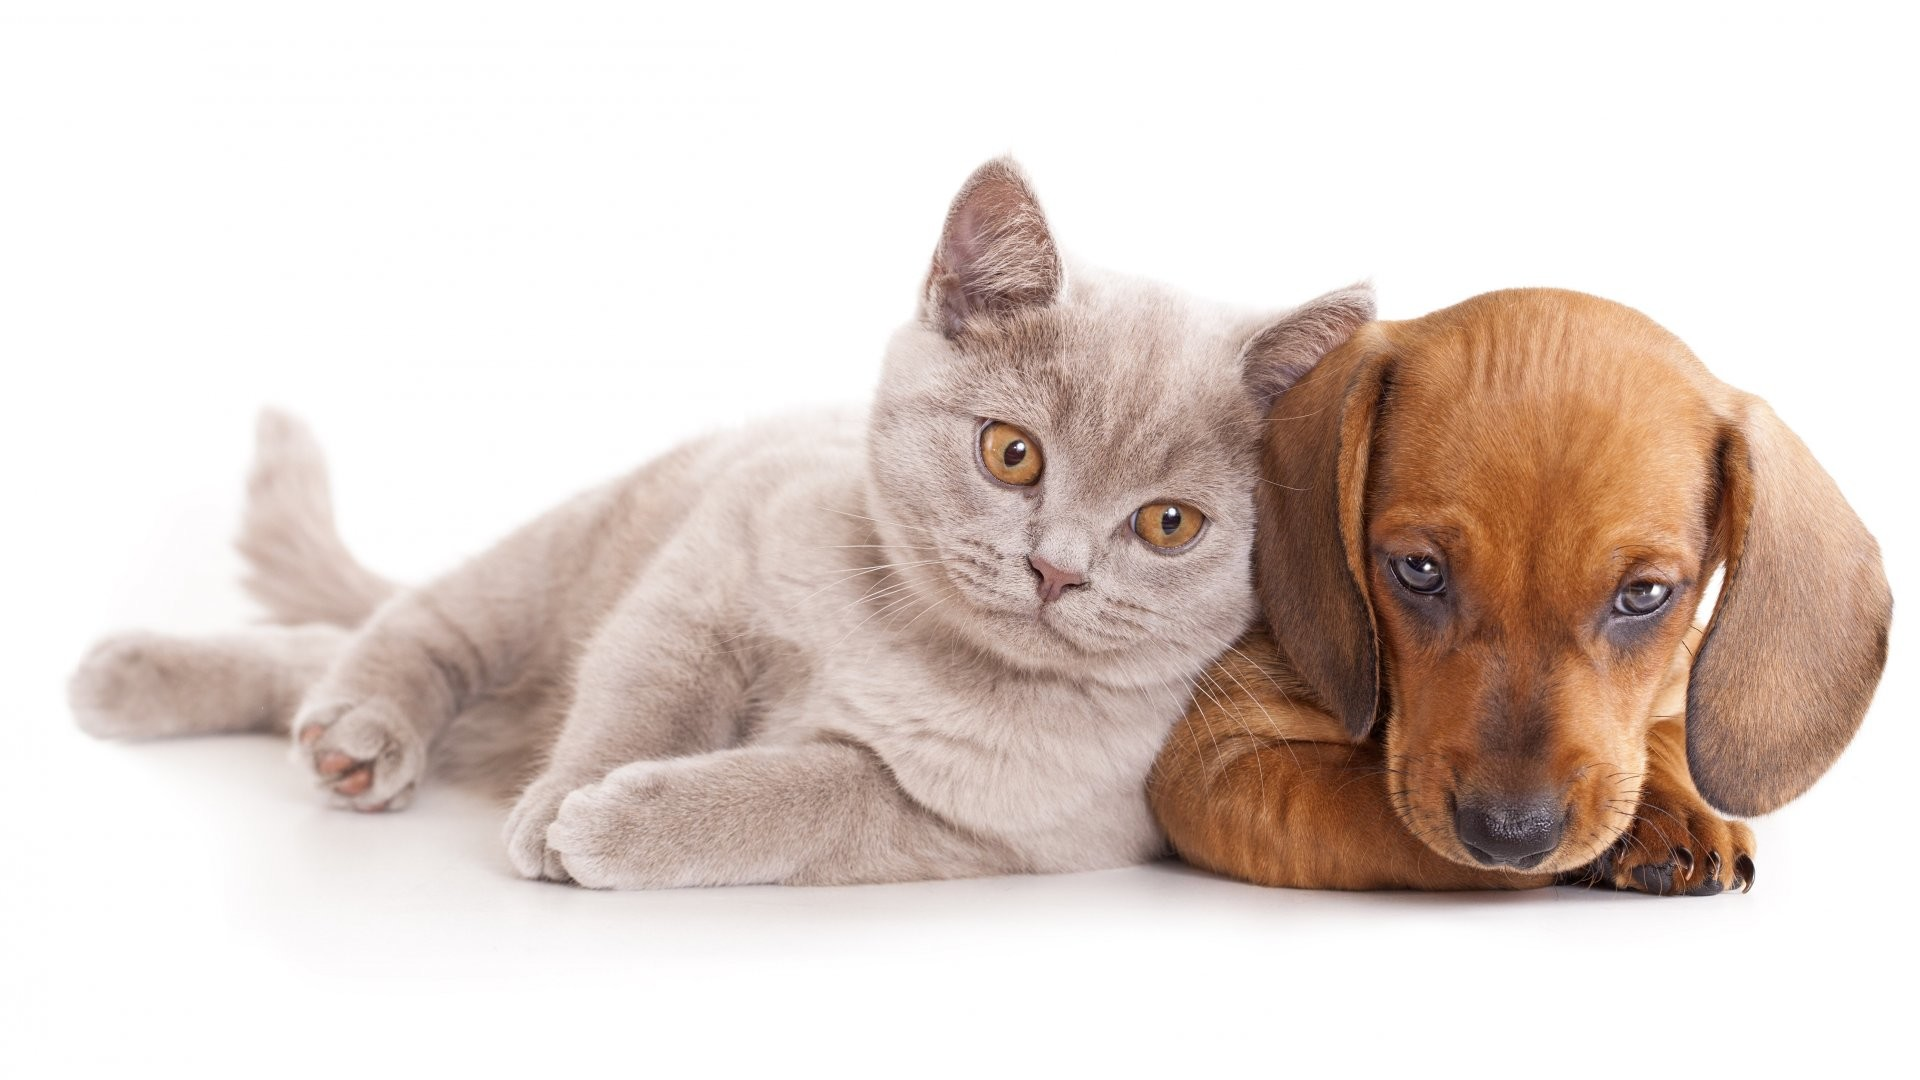 Best Cute cat dog free stock photos download